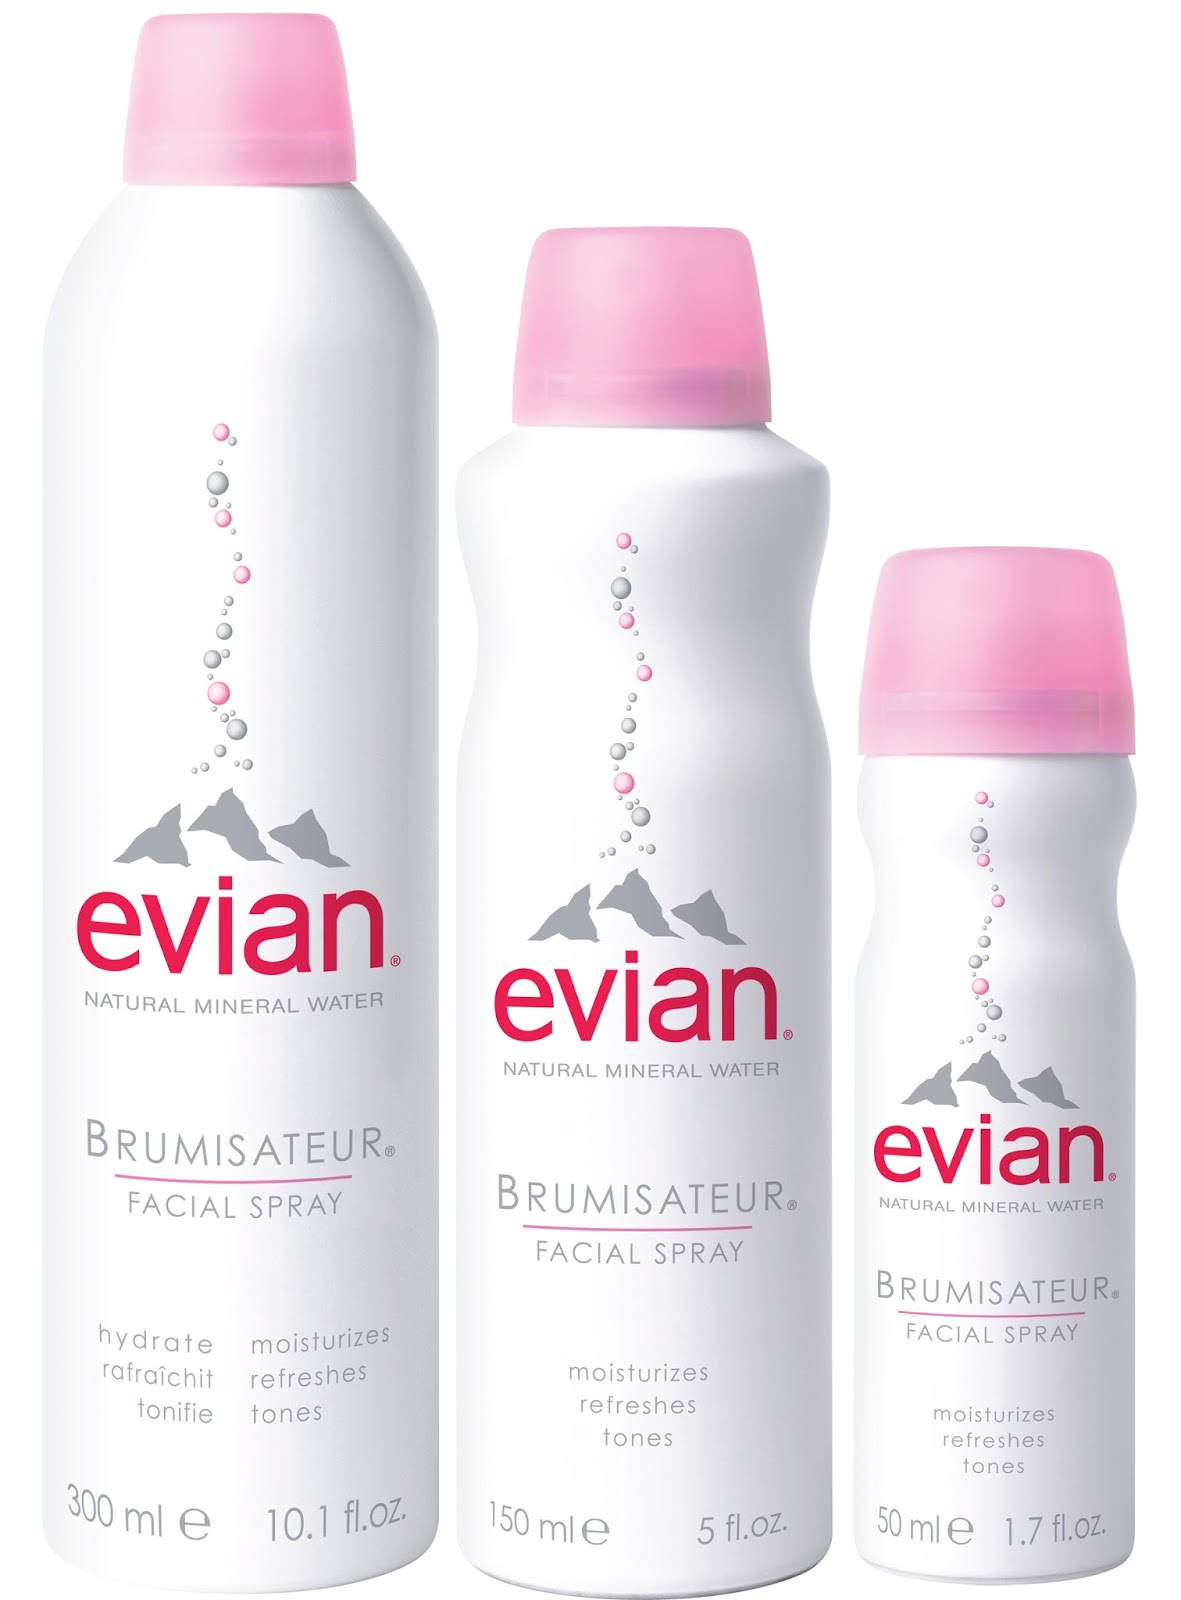 Evian mist facial spray